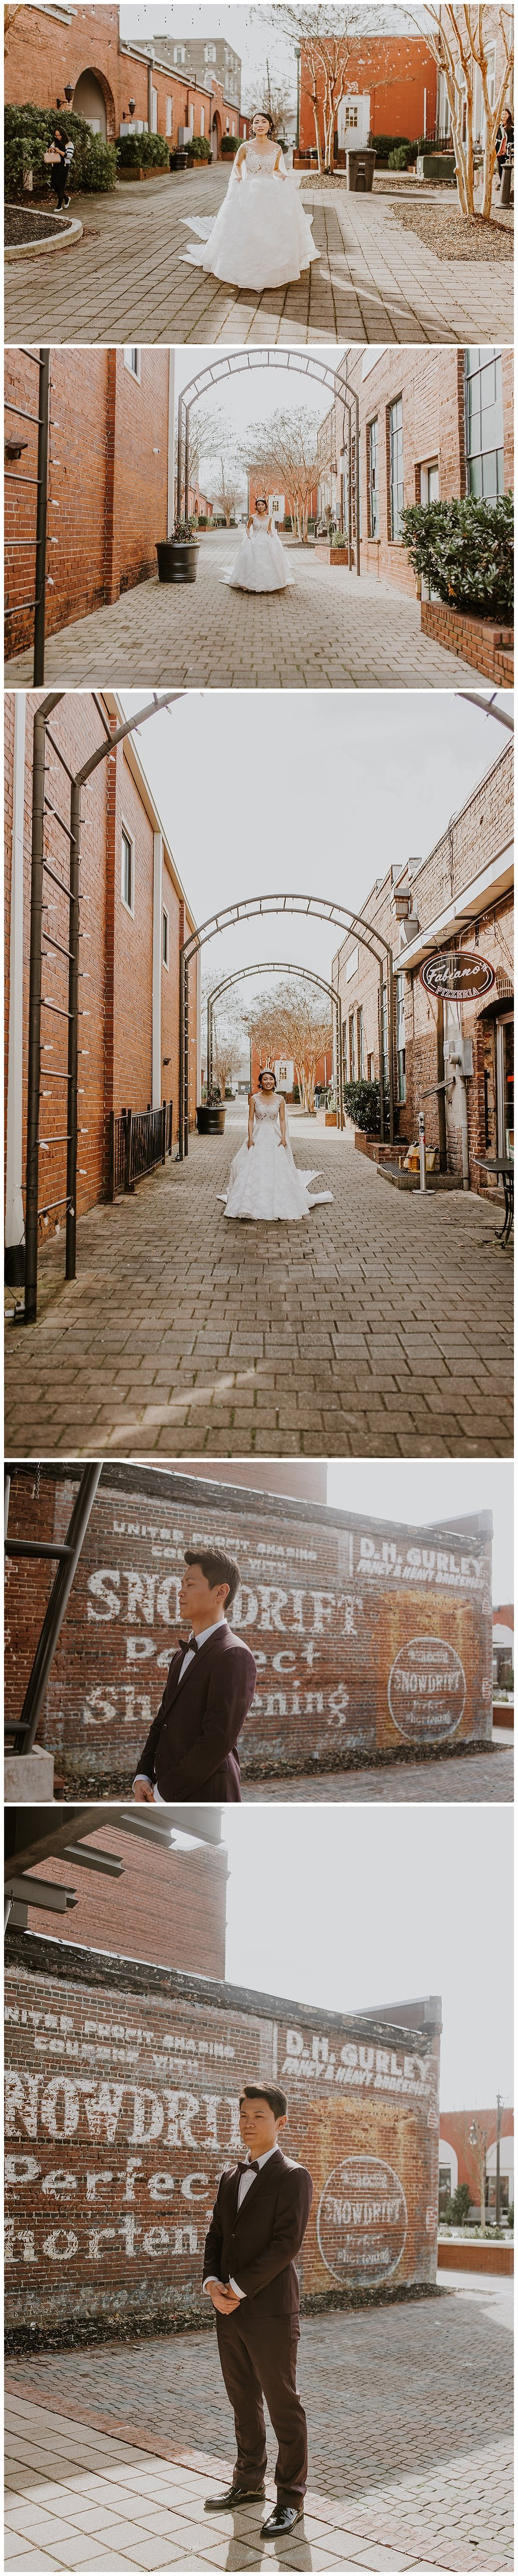 DOUGLASVILLE_GEORGIA_WEDDING_PHOTOGRAPHER_ELOPEMENT_ATLANTA_NATURAL_LIGHT_MOODY_SUNNY_0002.jpg